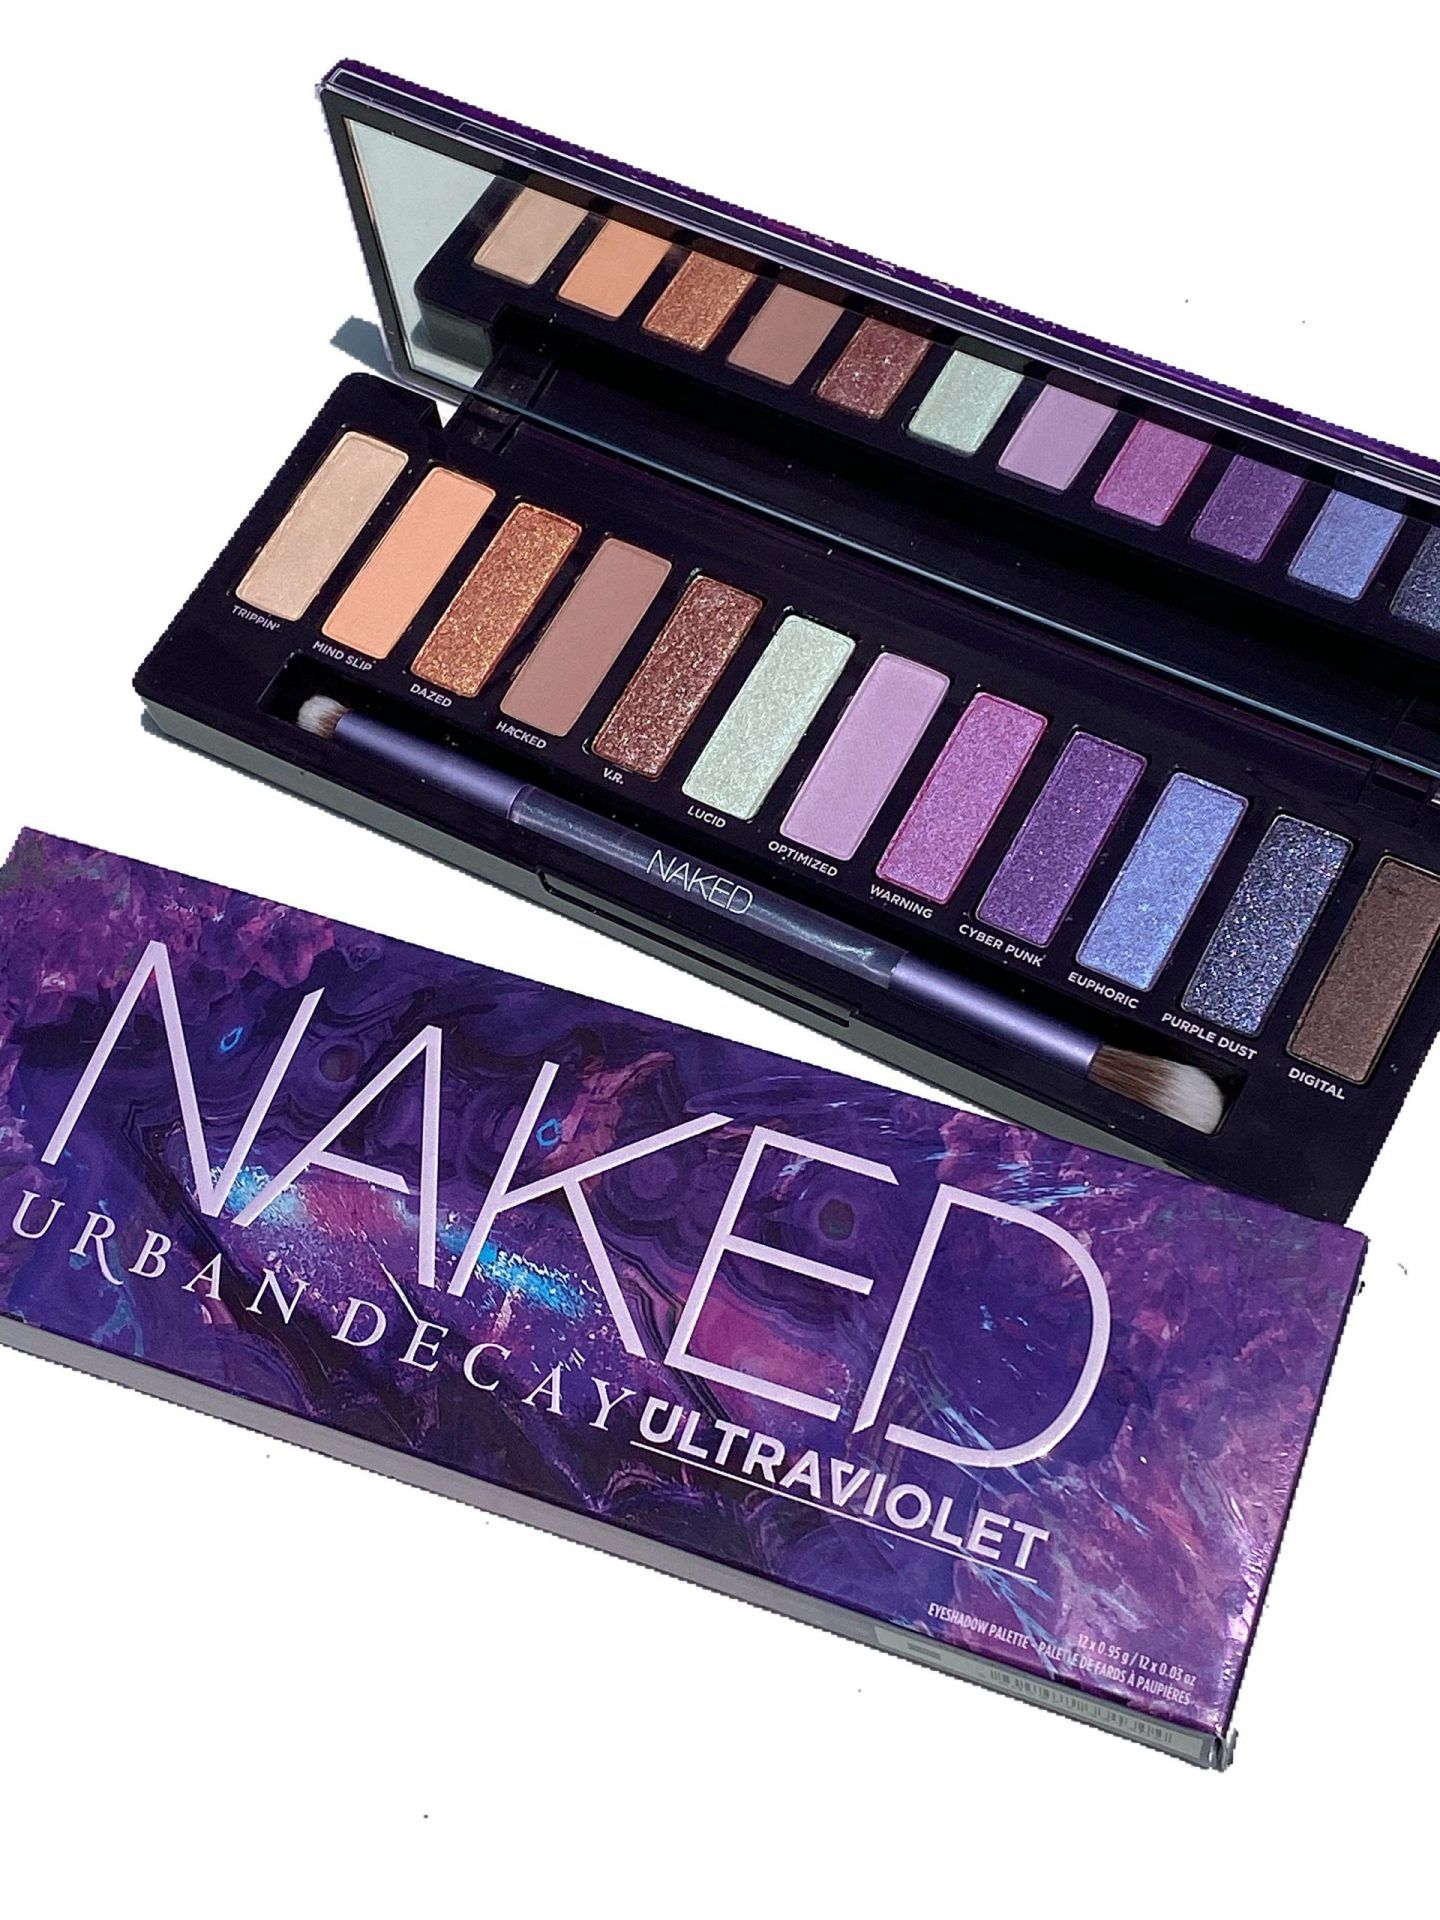 Urban Decay Naked Ultraviolet Palette Eyeshadow Photos & Swatches - Cali Beaute